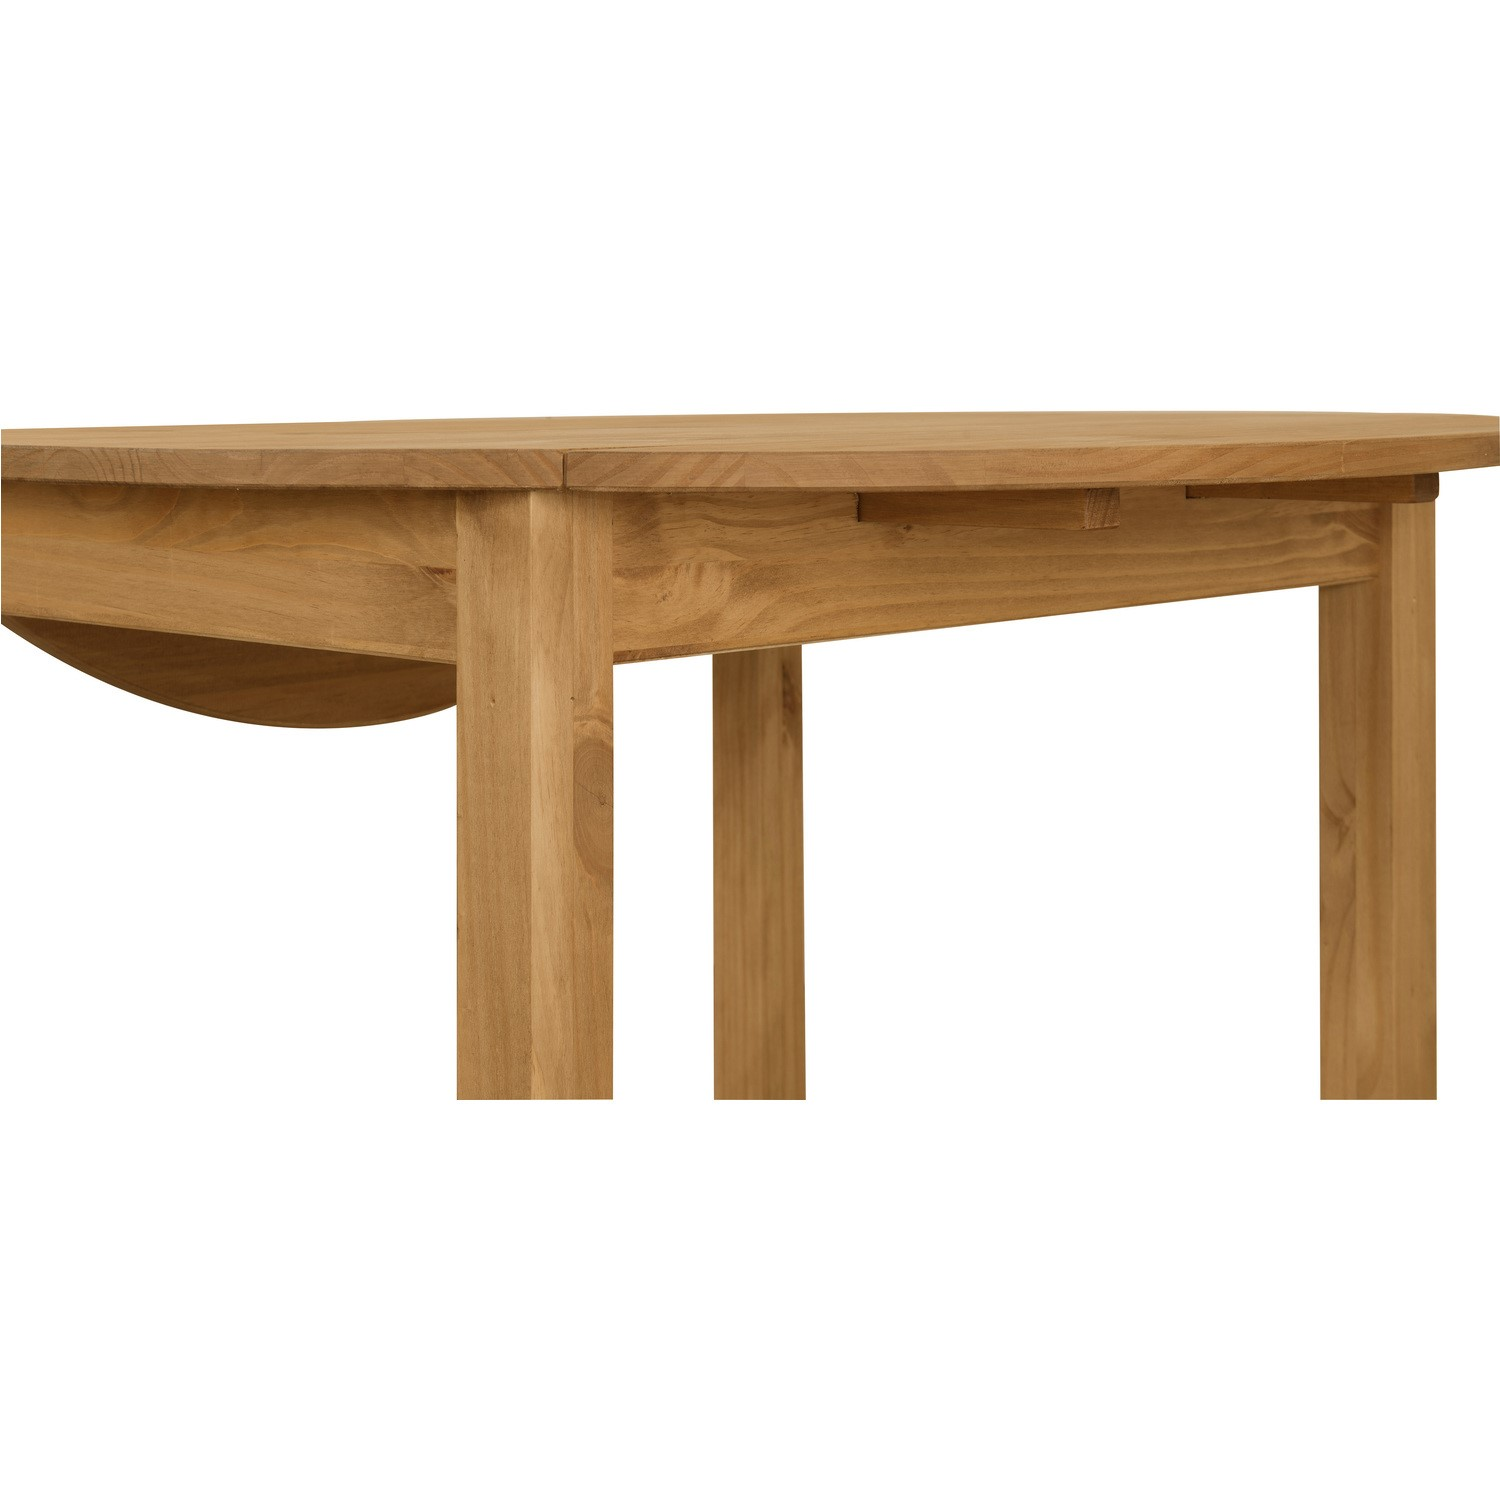 Strange Corona Mexican Solid Pine Round Drop Leaf Dining Table Set With 4 Chairs Ocoug Best Dining Table And Chair Ideas Images Ocougorg